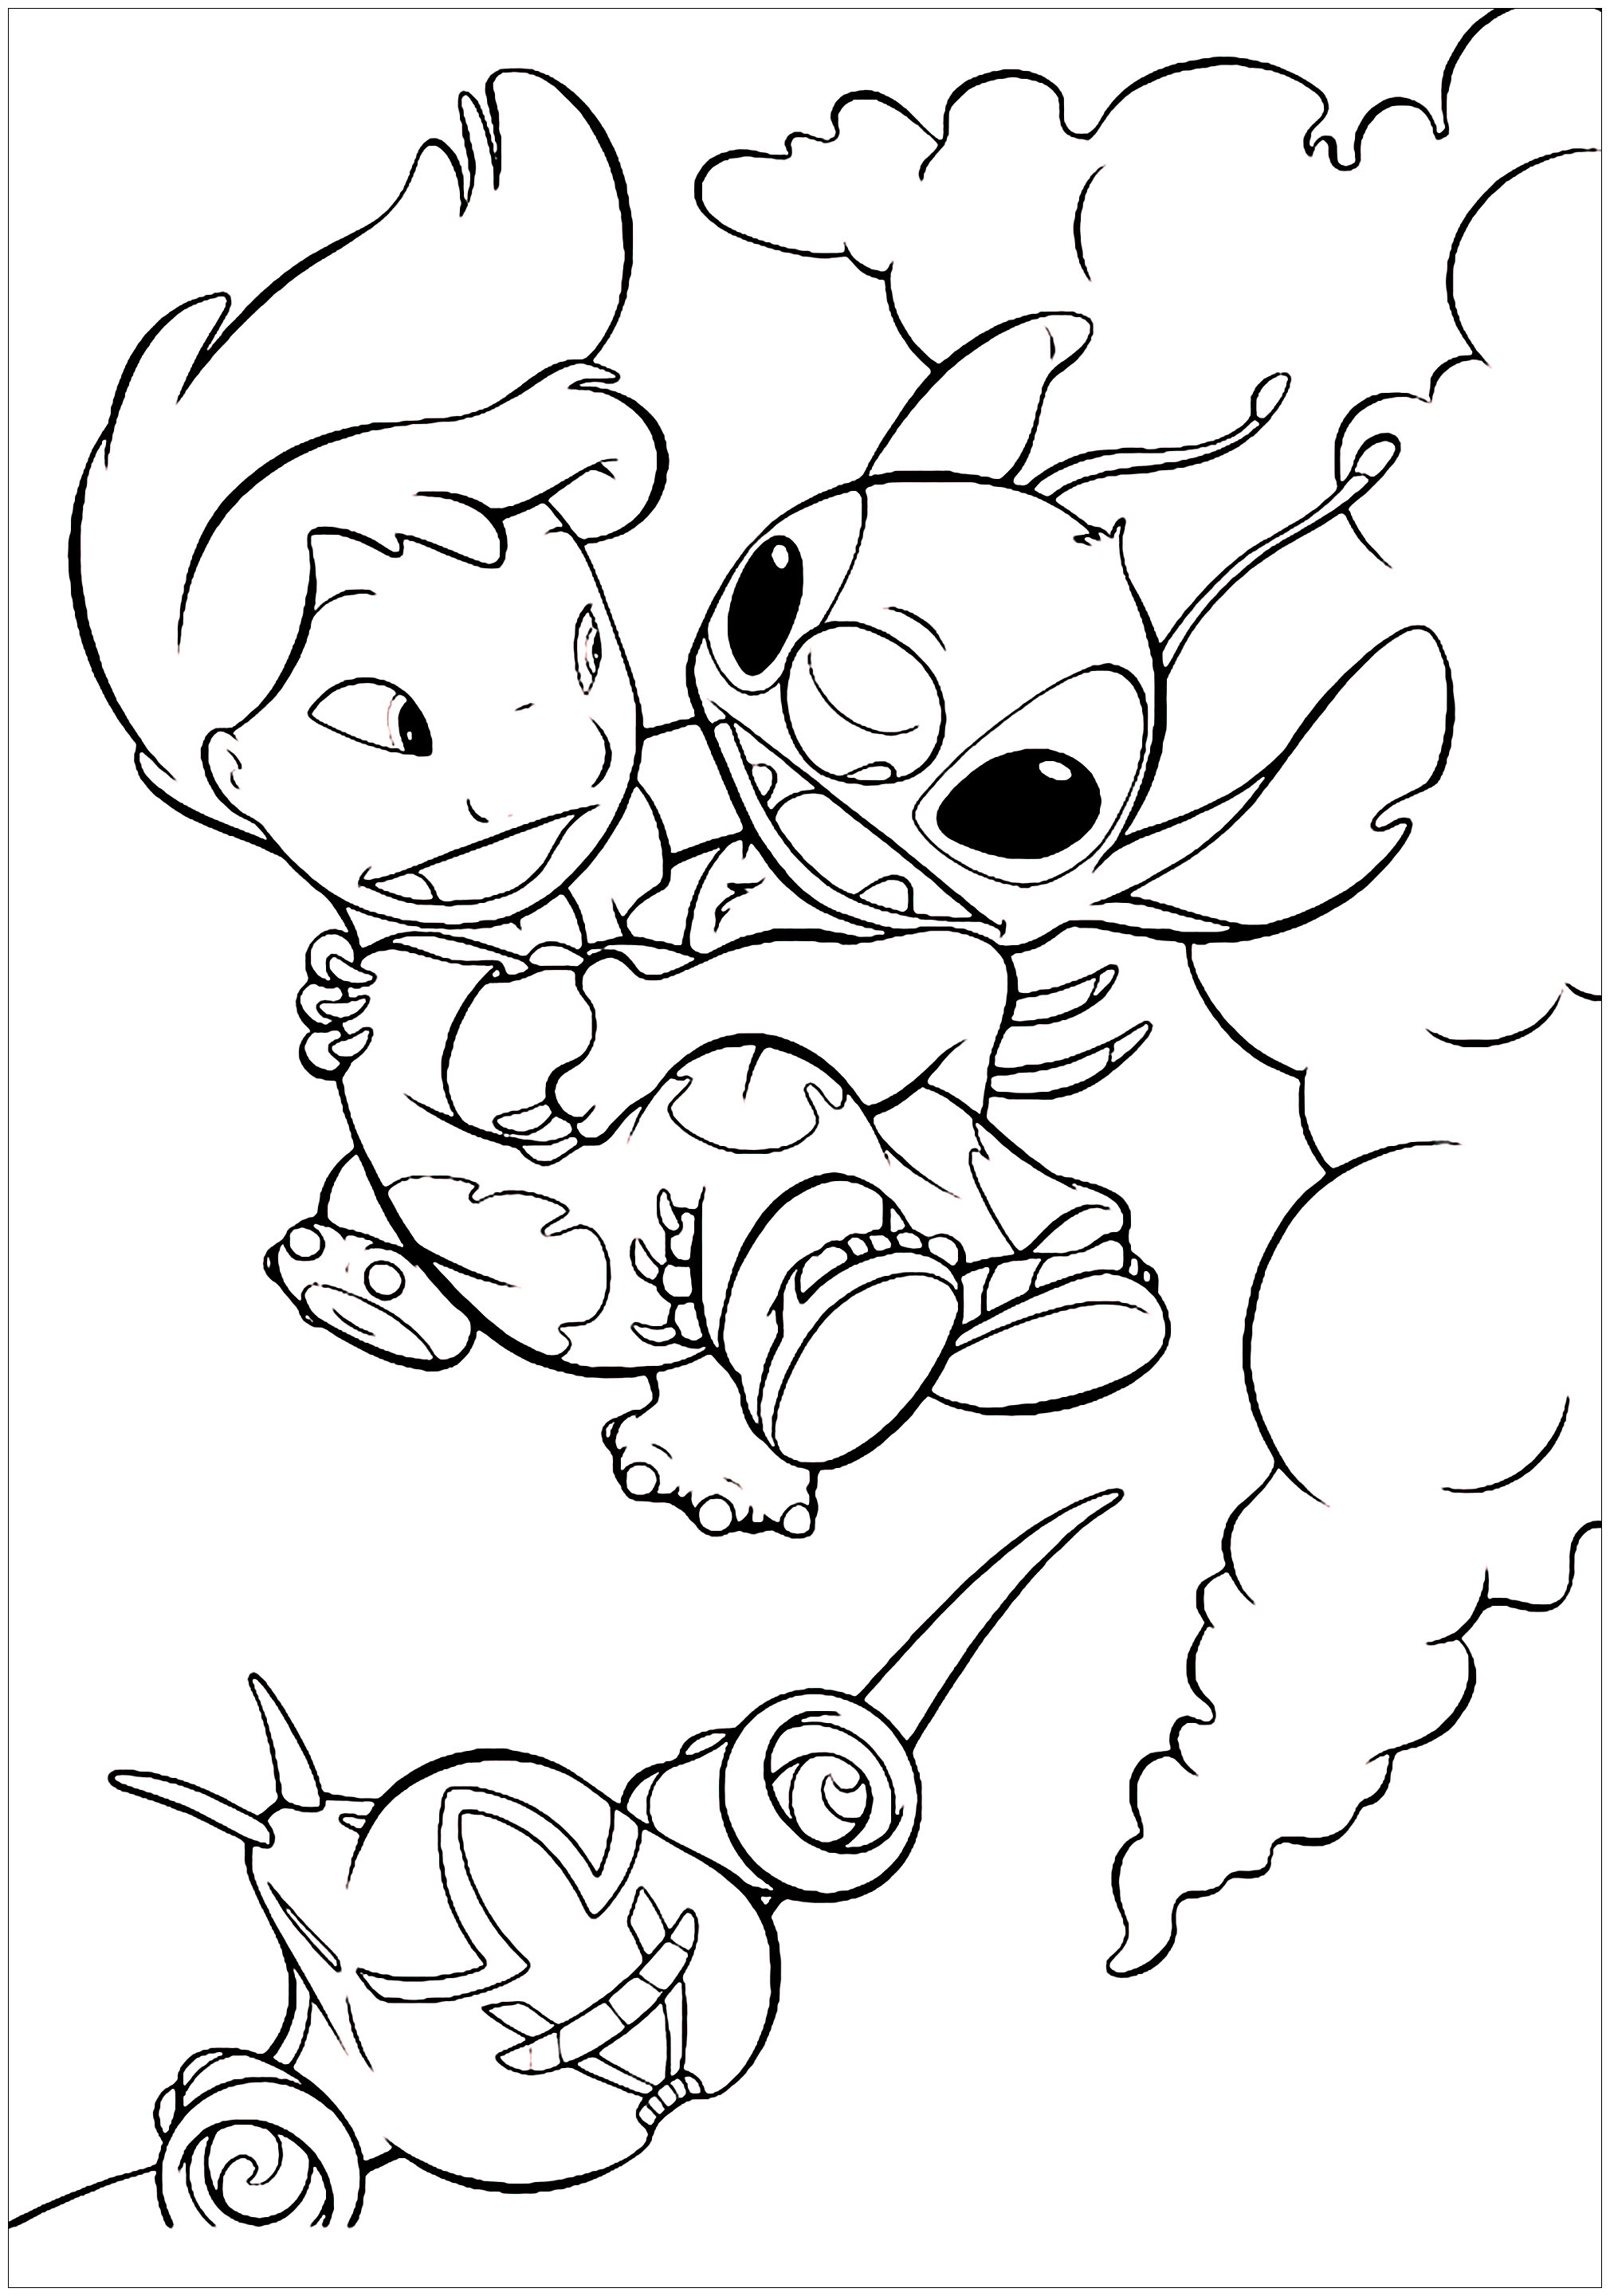 Lilo Pelekai | Disney character drawings, Stitch coloring pages ... | 2881x2020